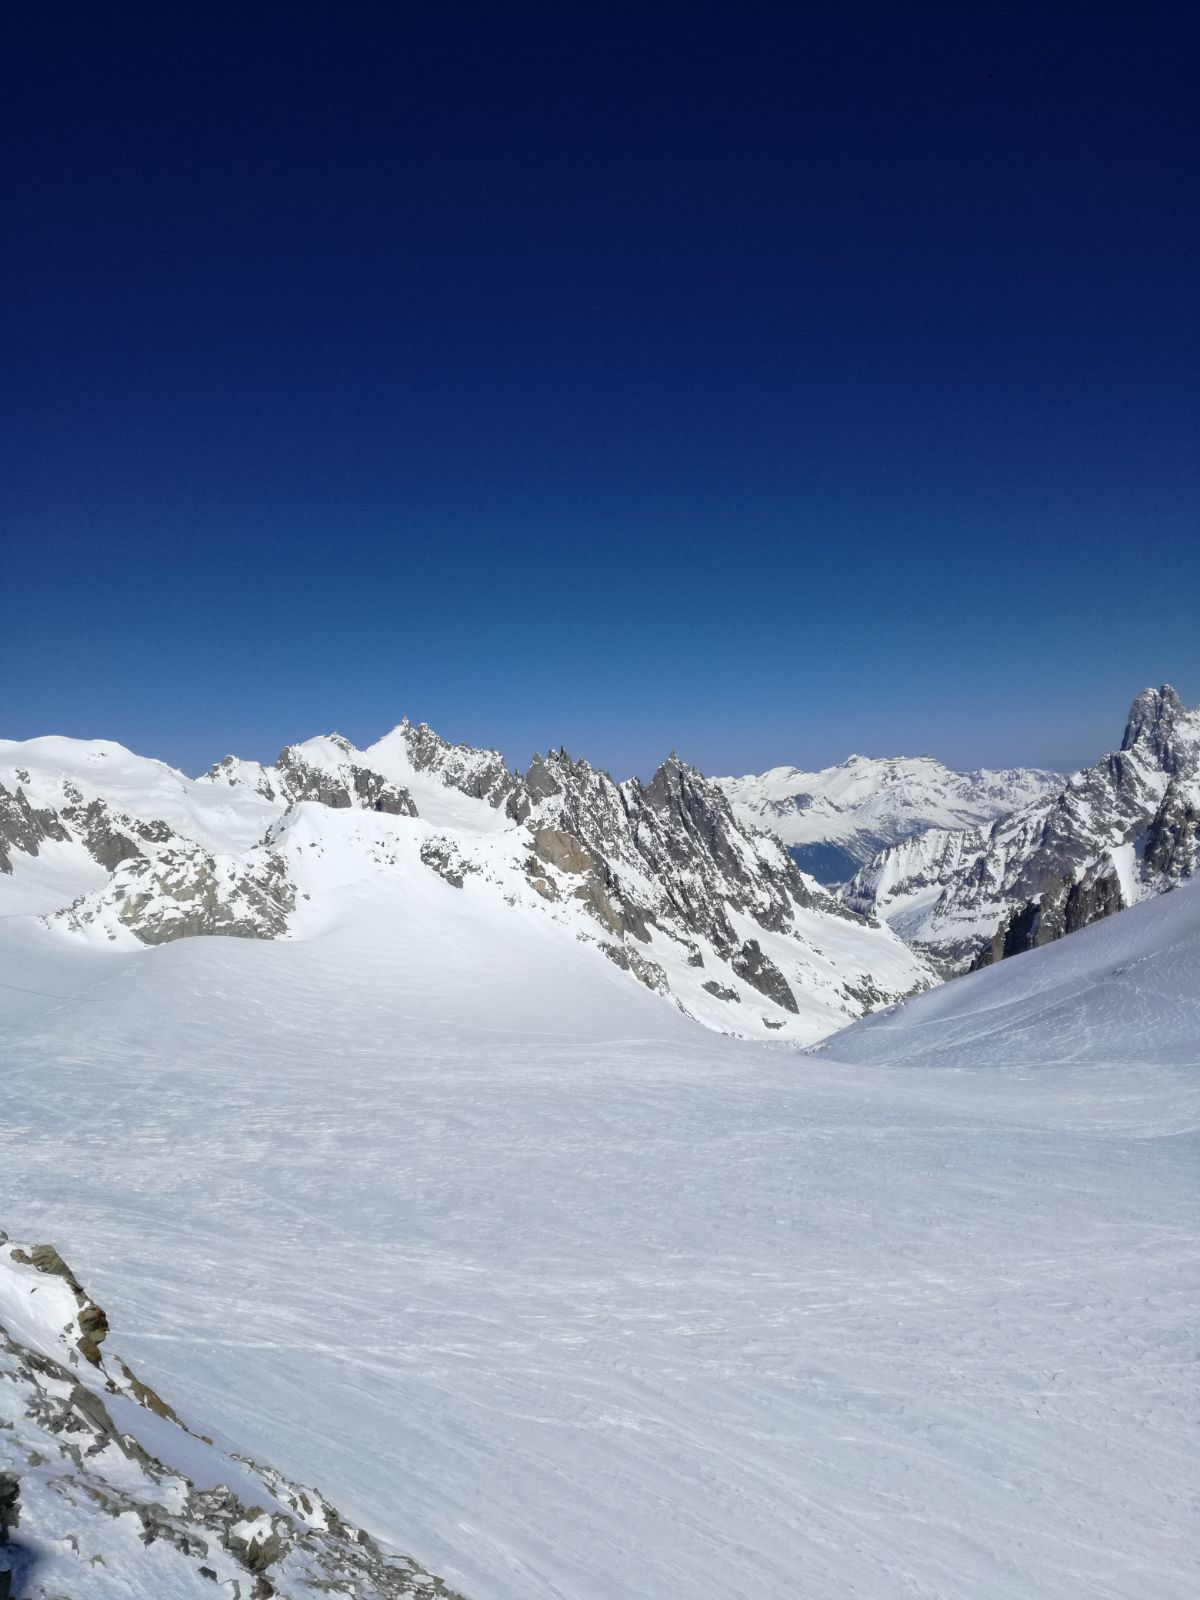 vallee blanche guide alpine proup (45)